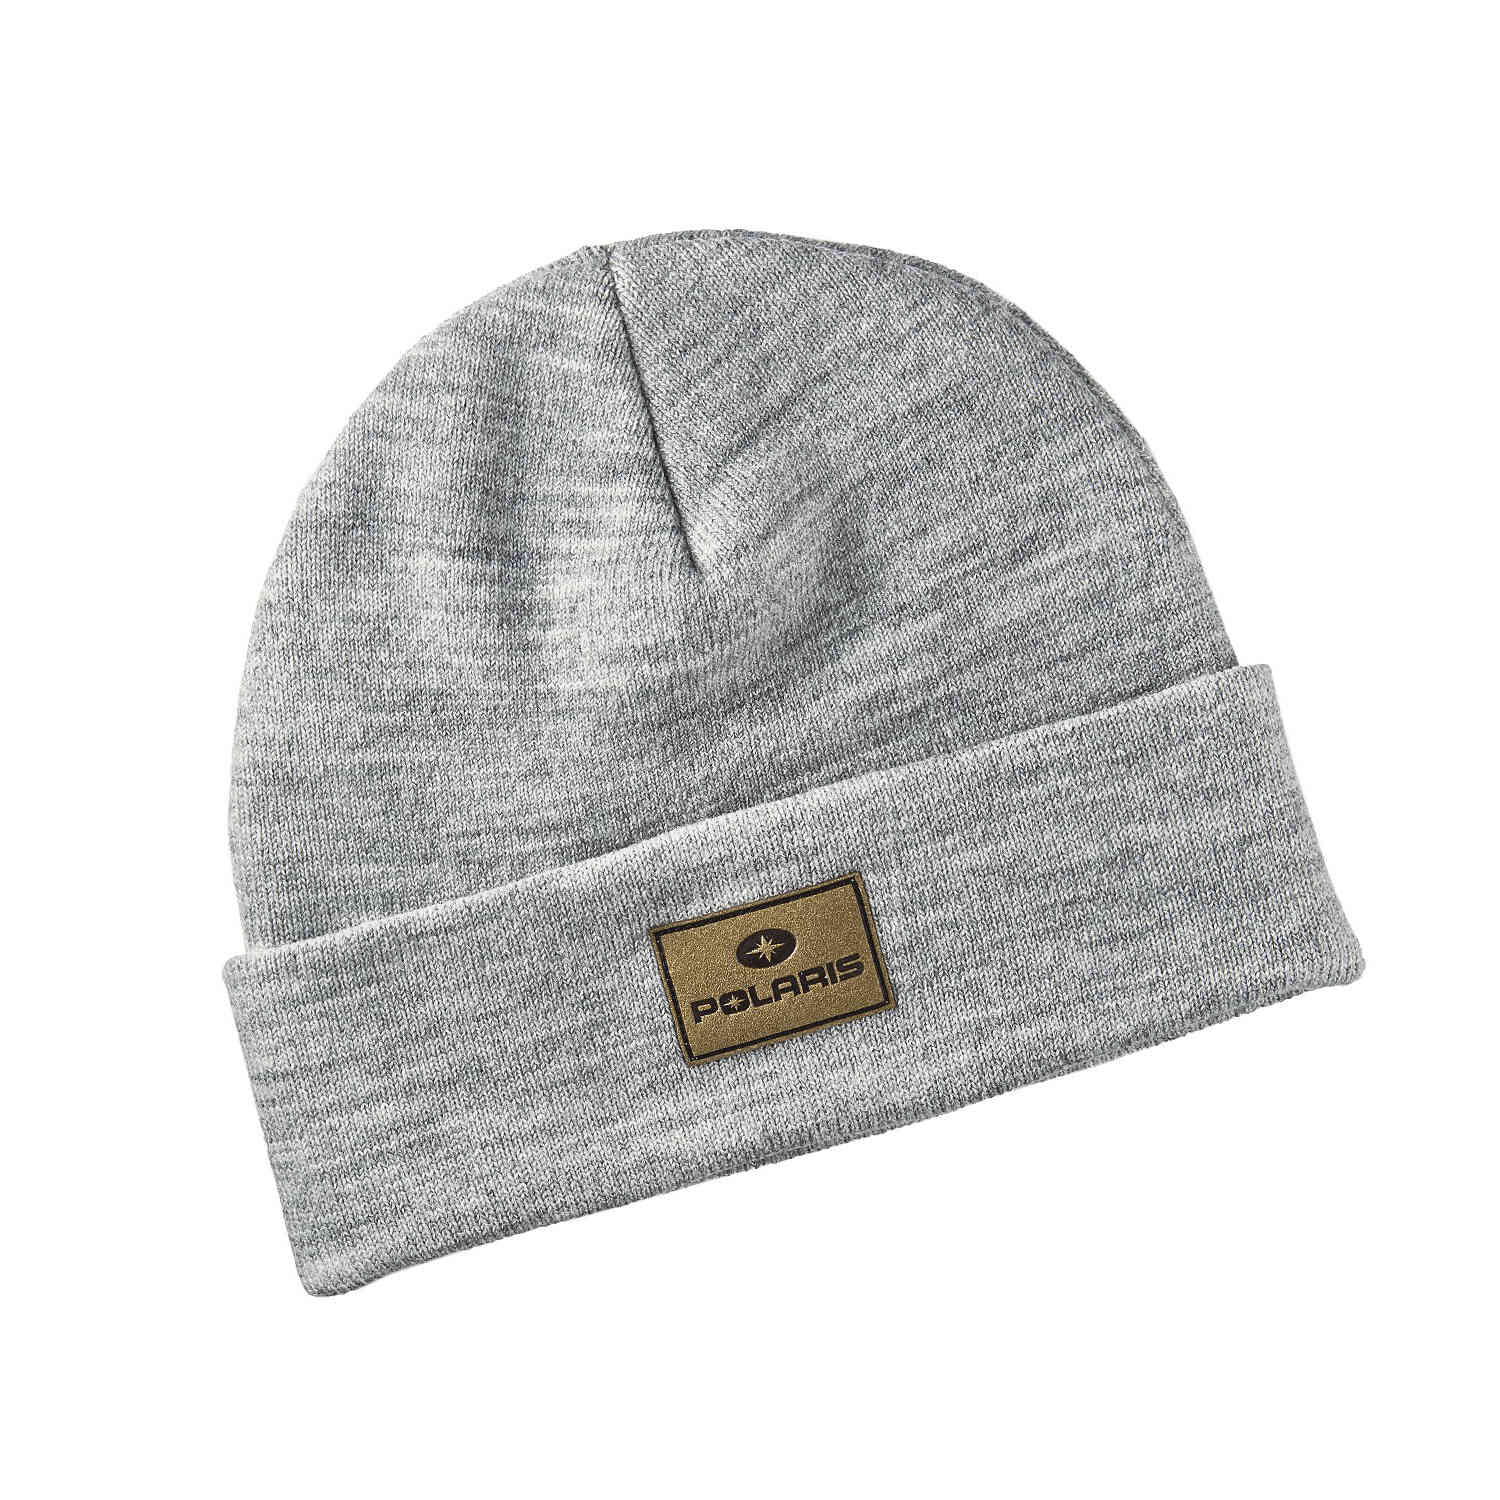 Men's Knit Beanie with Polaris® Patch, Gray